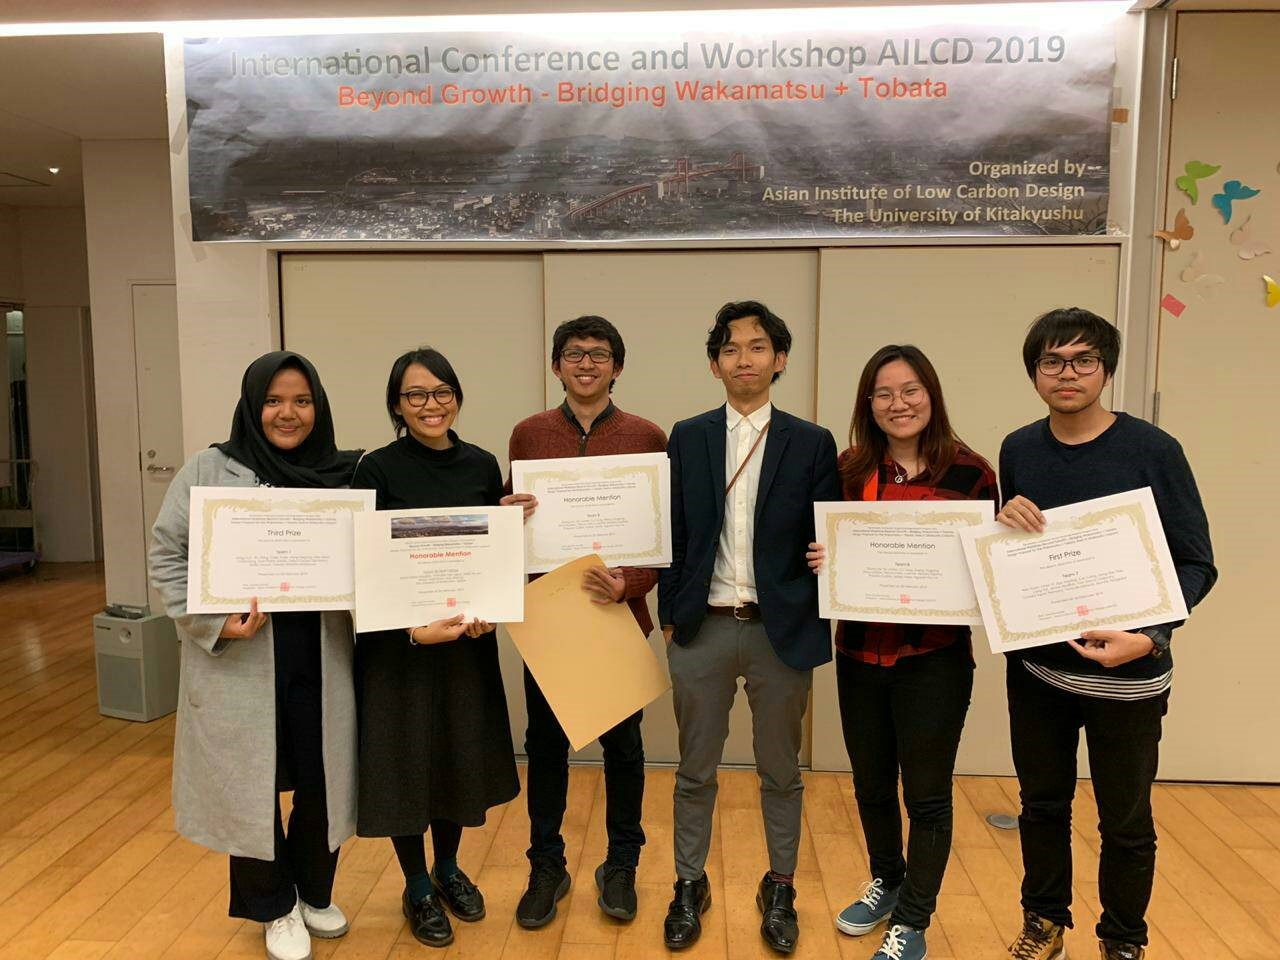 Juara 3 AILCD International Conference and Workshop 2019